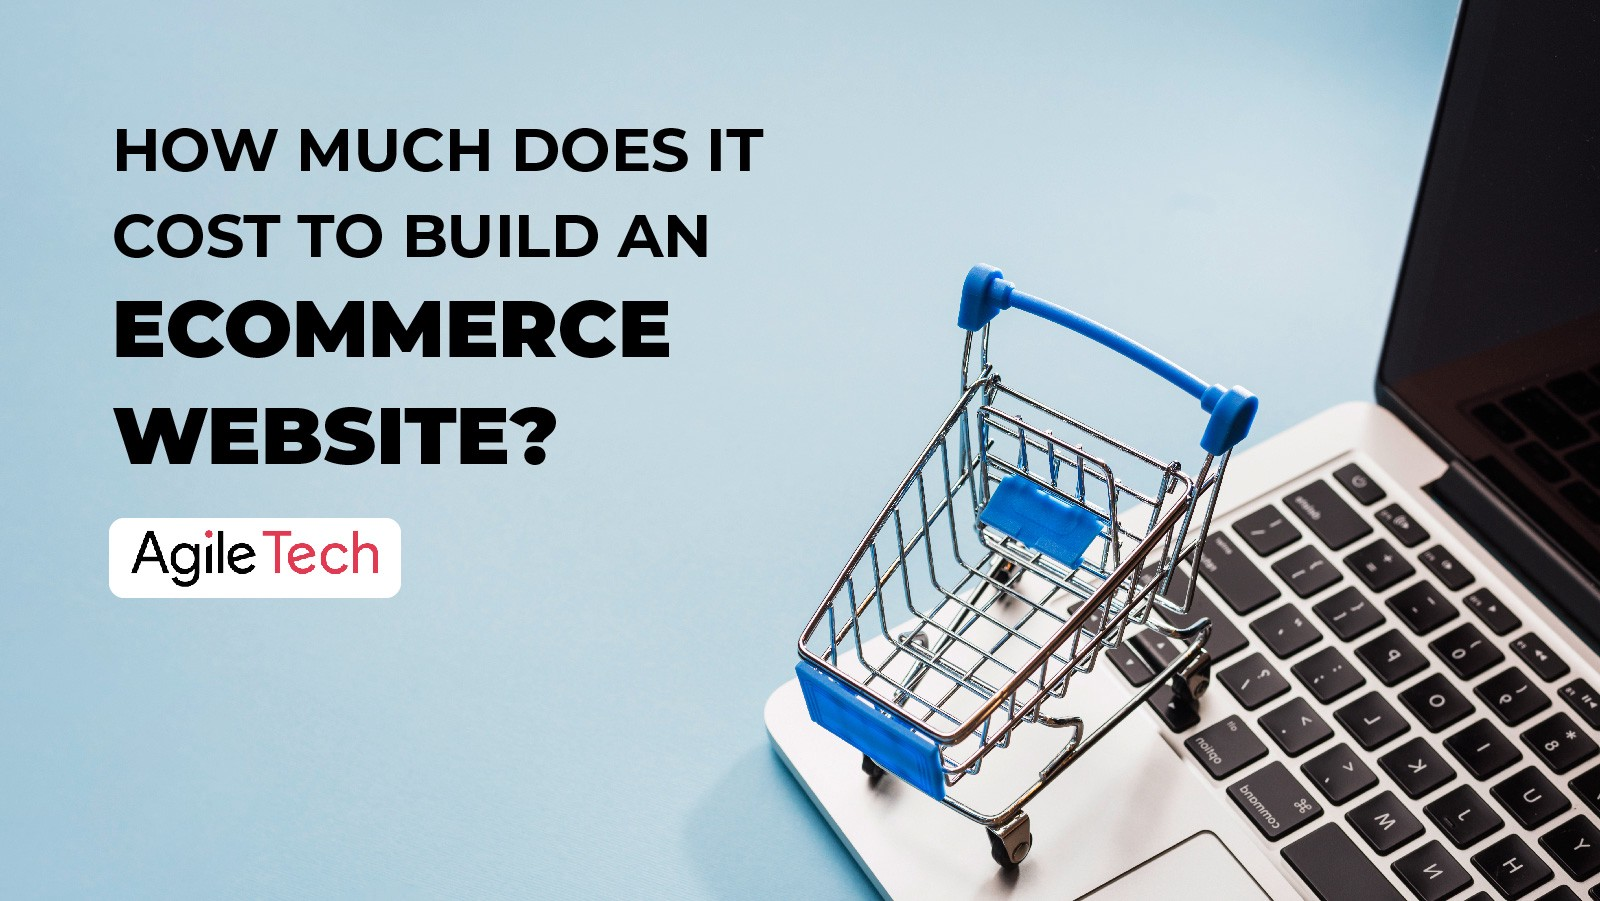 ecommerce website cost and successful online store for business by agiletech software development company